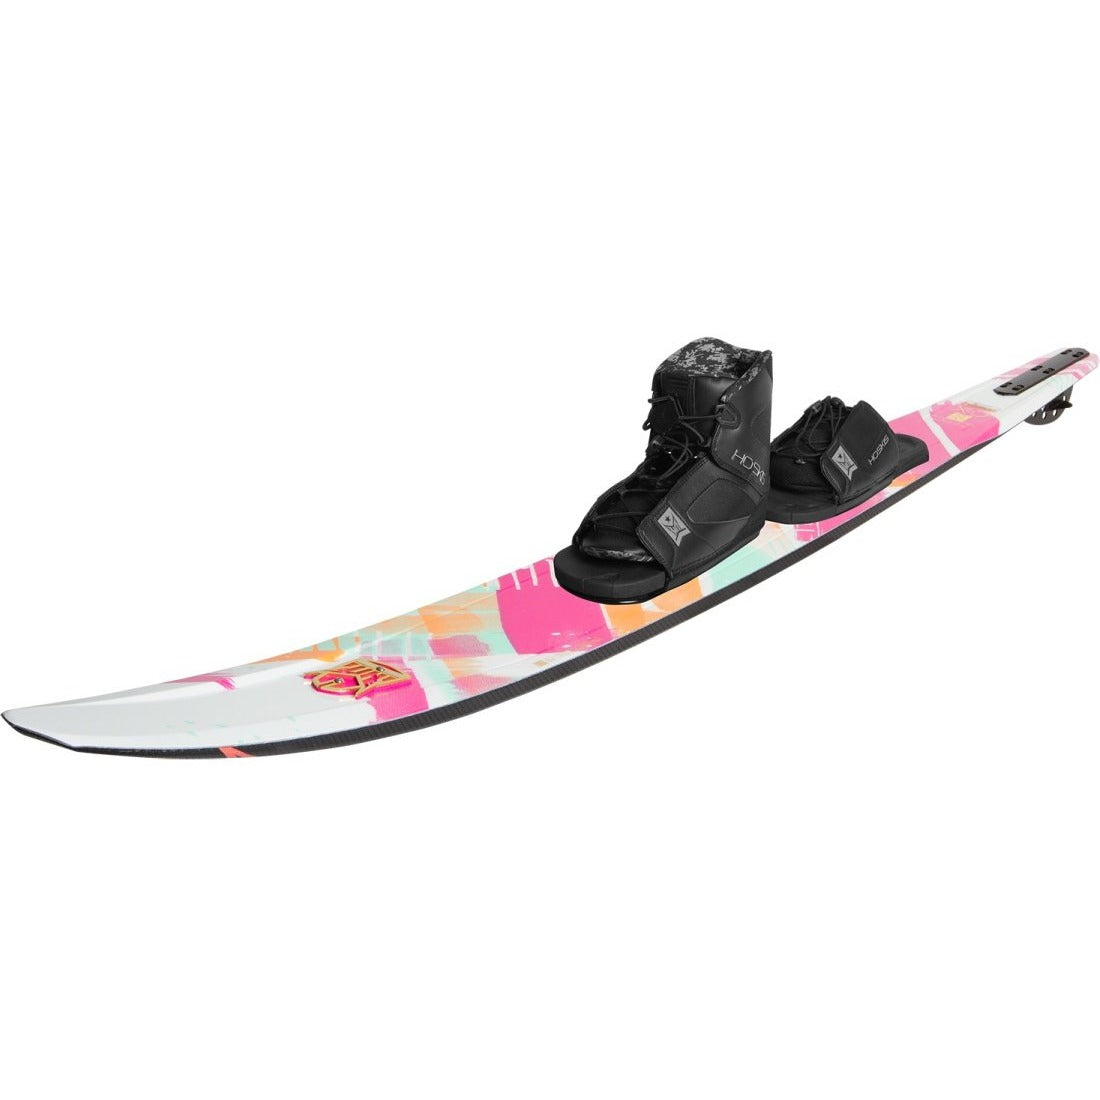 HO CX Slalom Women's Water Ski Package - 88 Gear